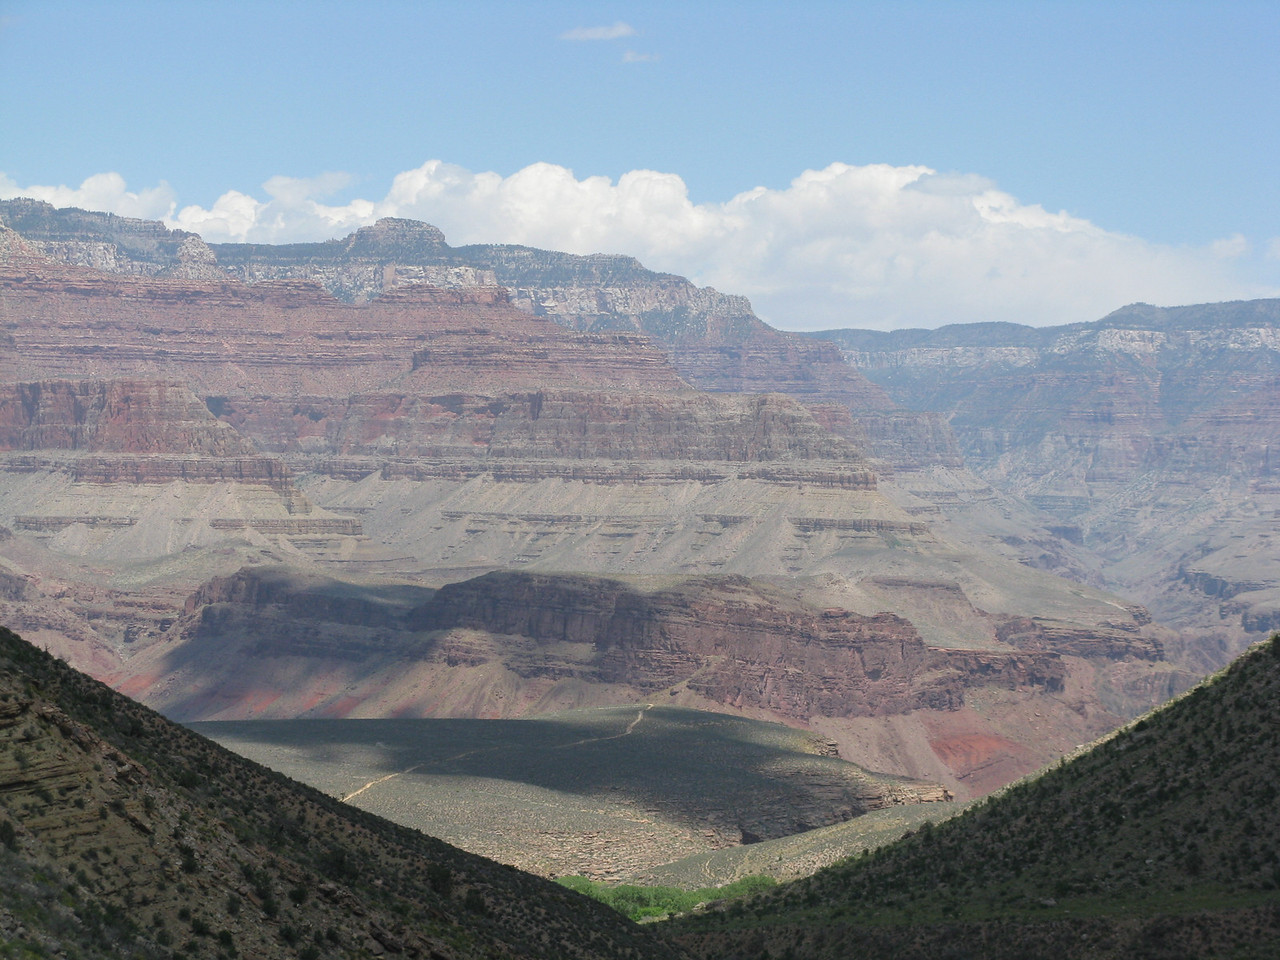 The shadows of the clouds dance about in the canyon.